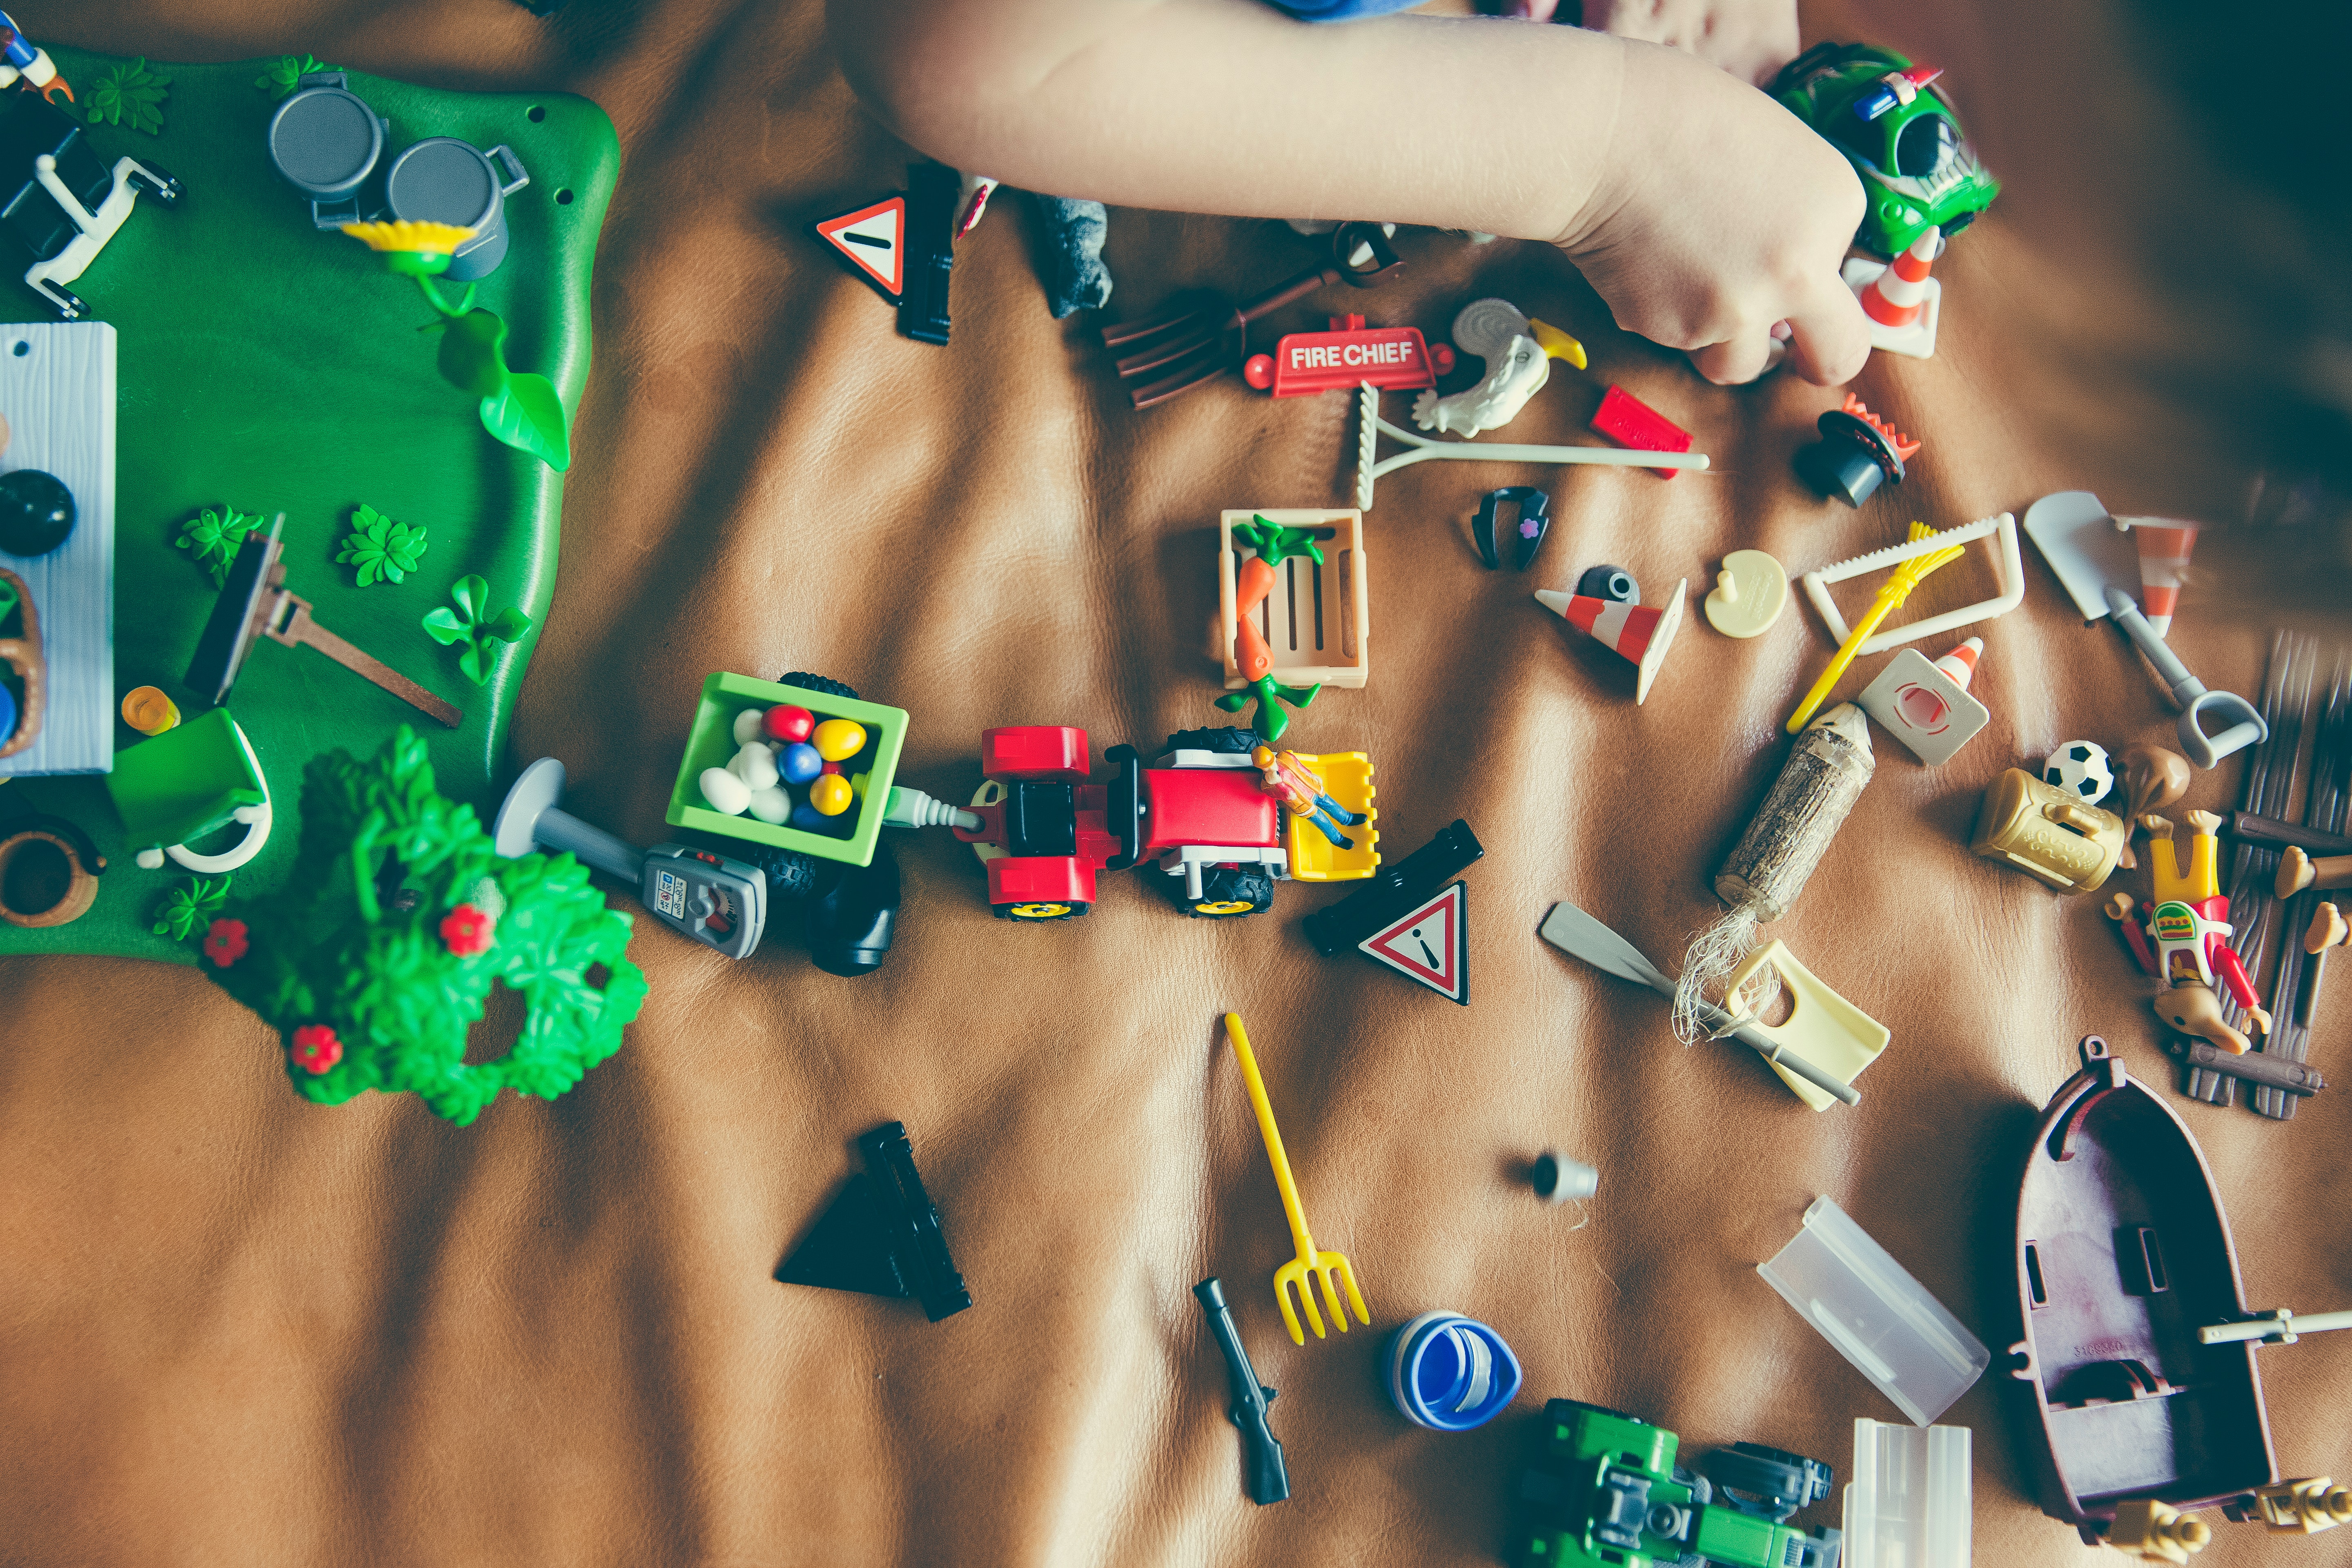 Why do we buy toys for our children? Here we can list the mindset while buying the toys. As parents, while purchasing toys, these things are to be kept in mind: